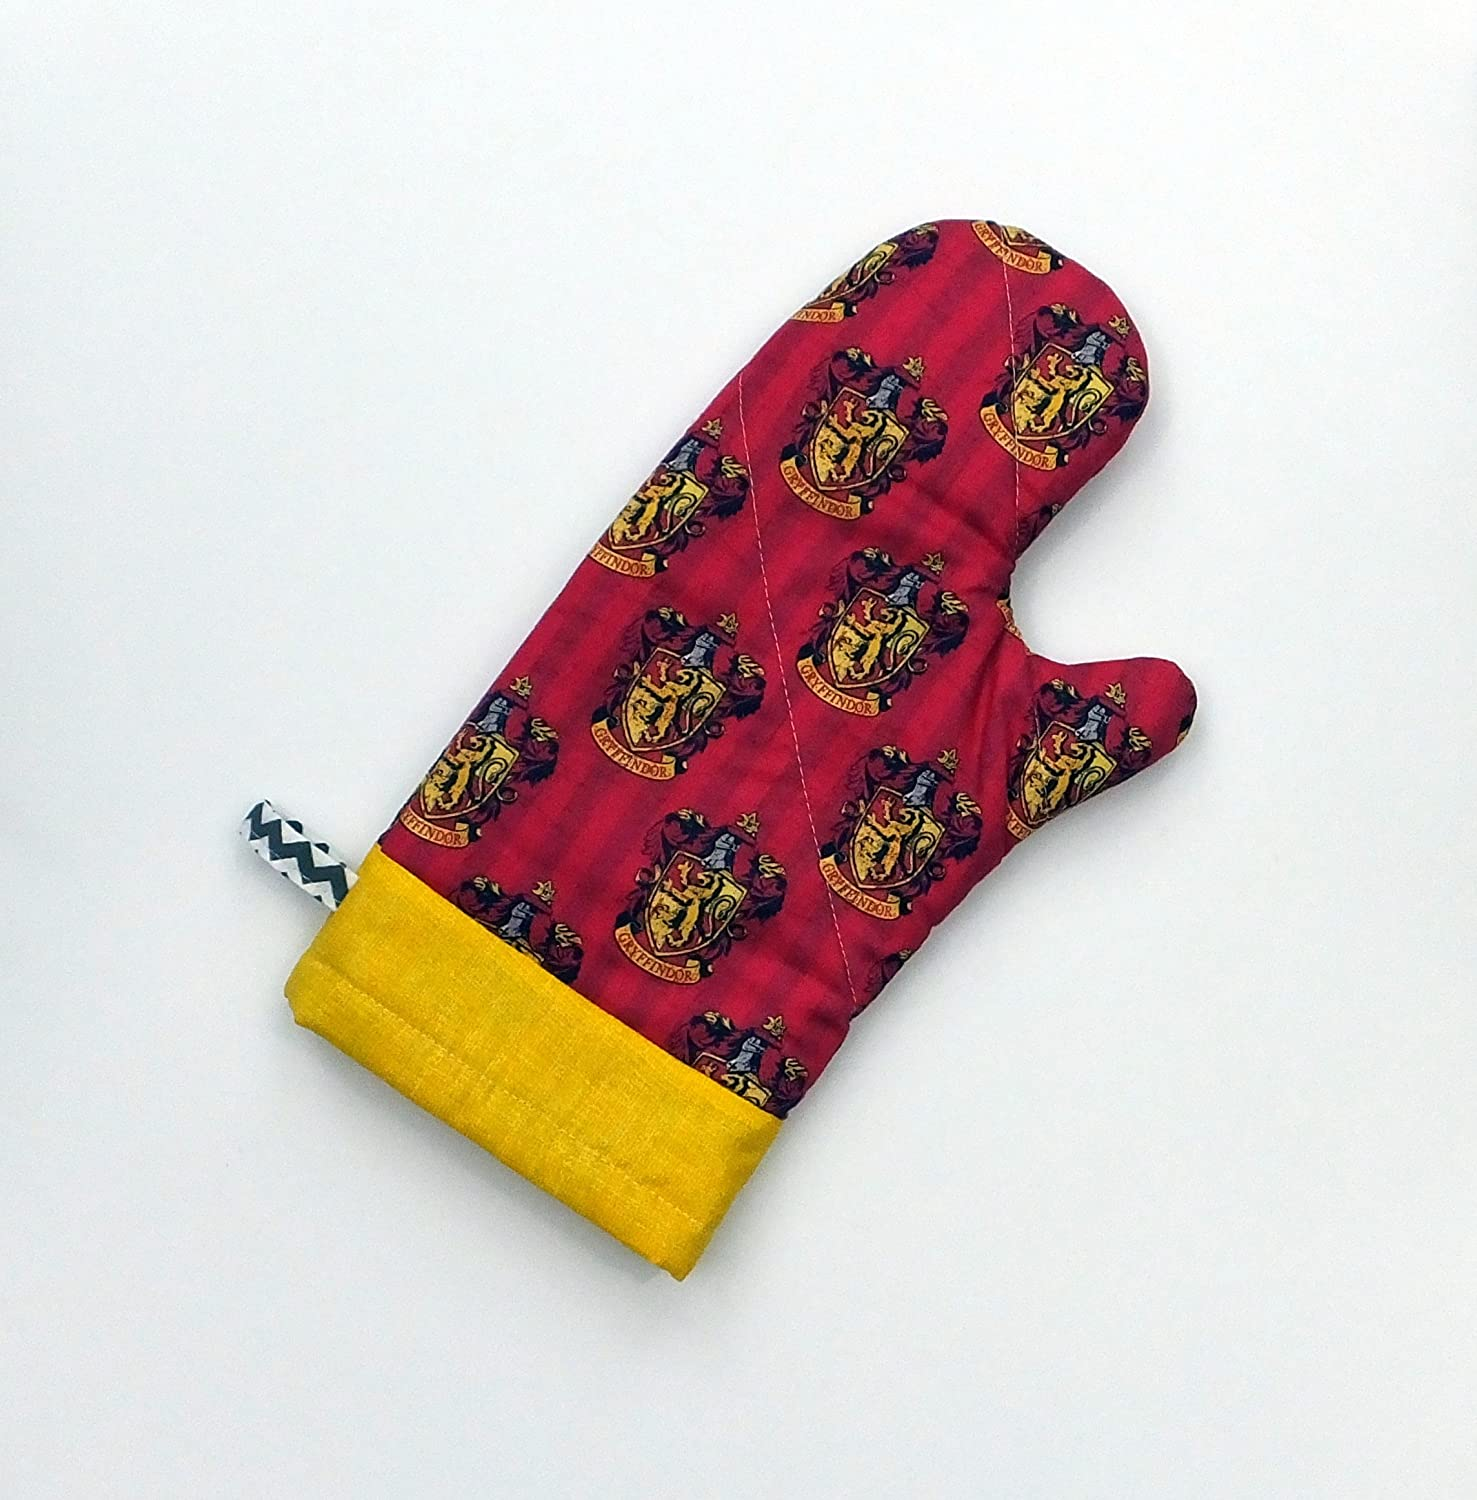 Harry Potter Gryffindor Oven Mitt